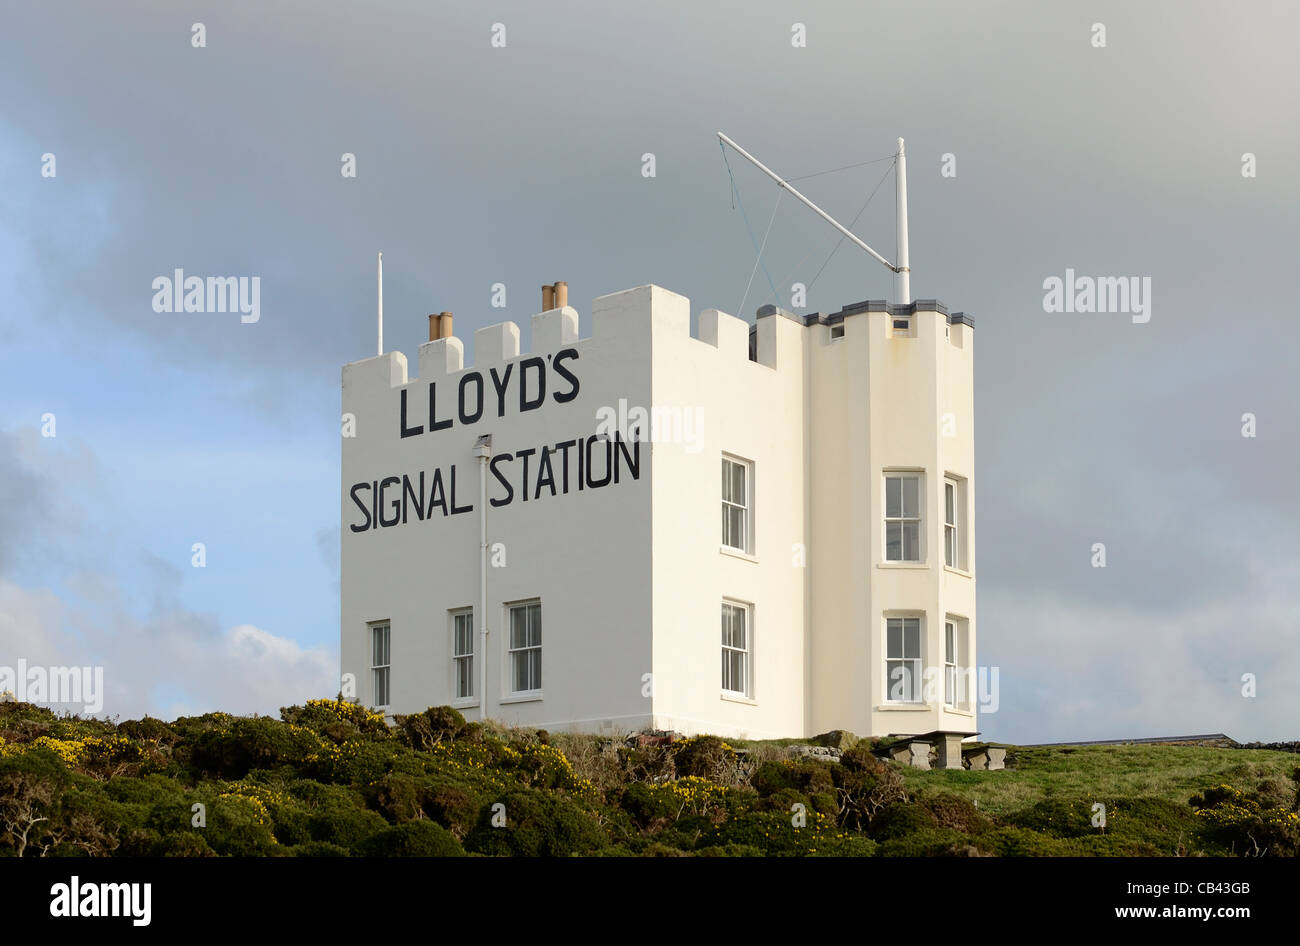 Lloyds signal station over near church cove on the lizard peninsular in cornwall, uk - Stock Image